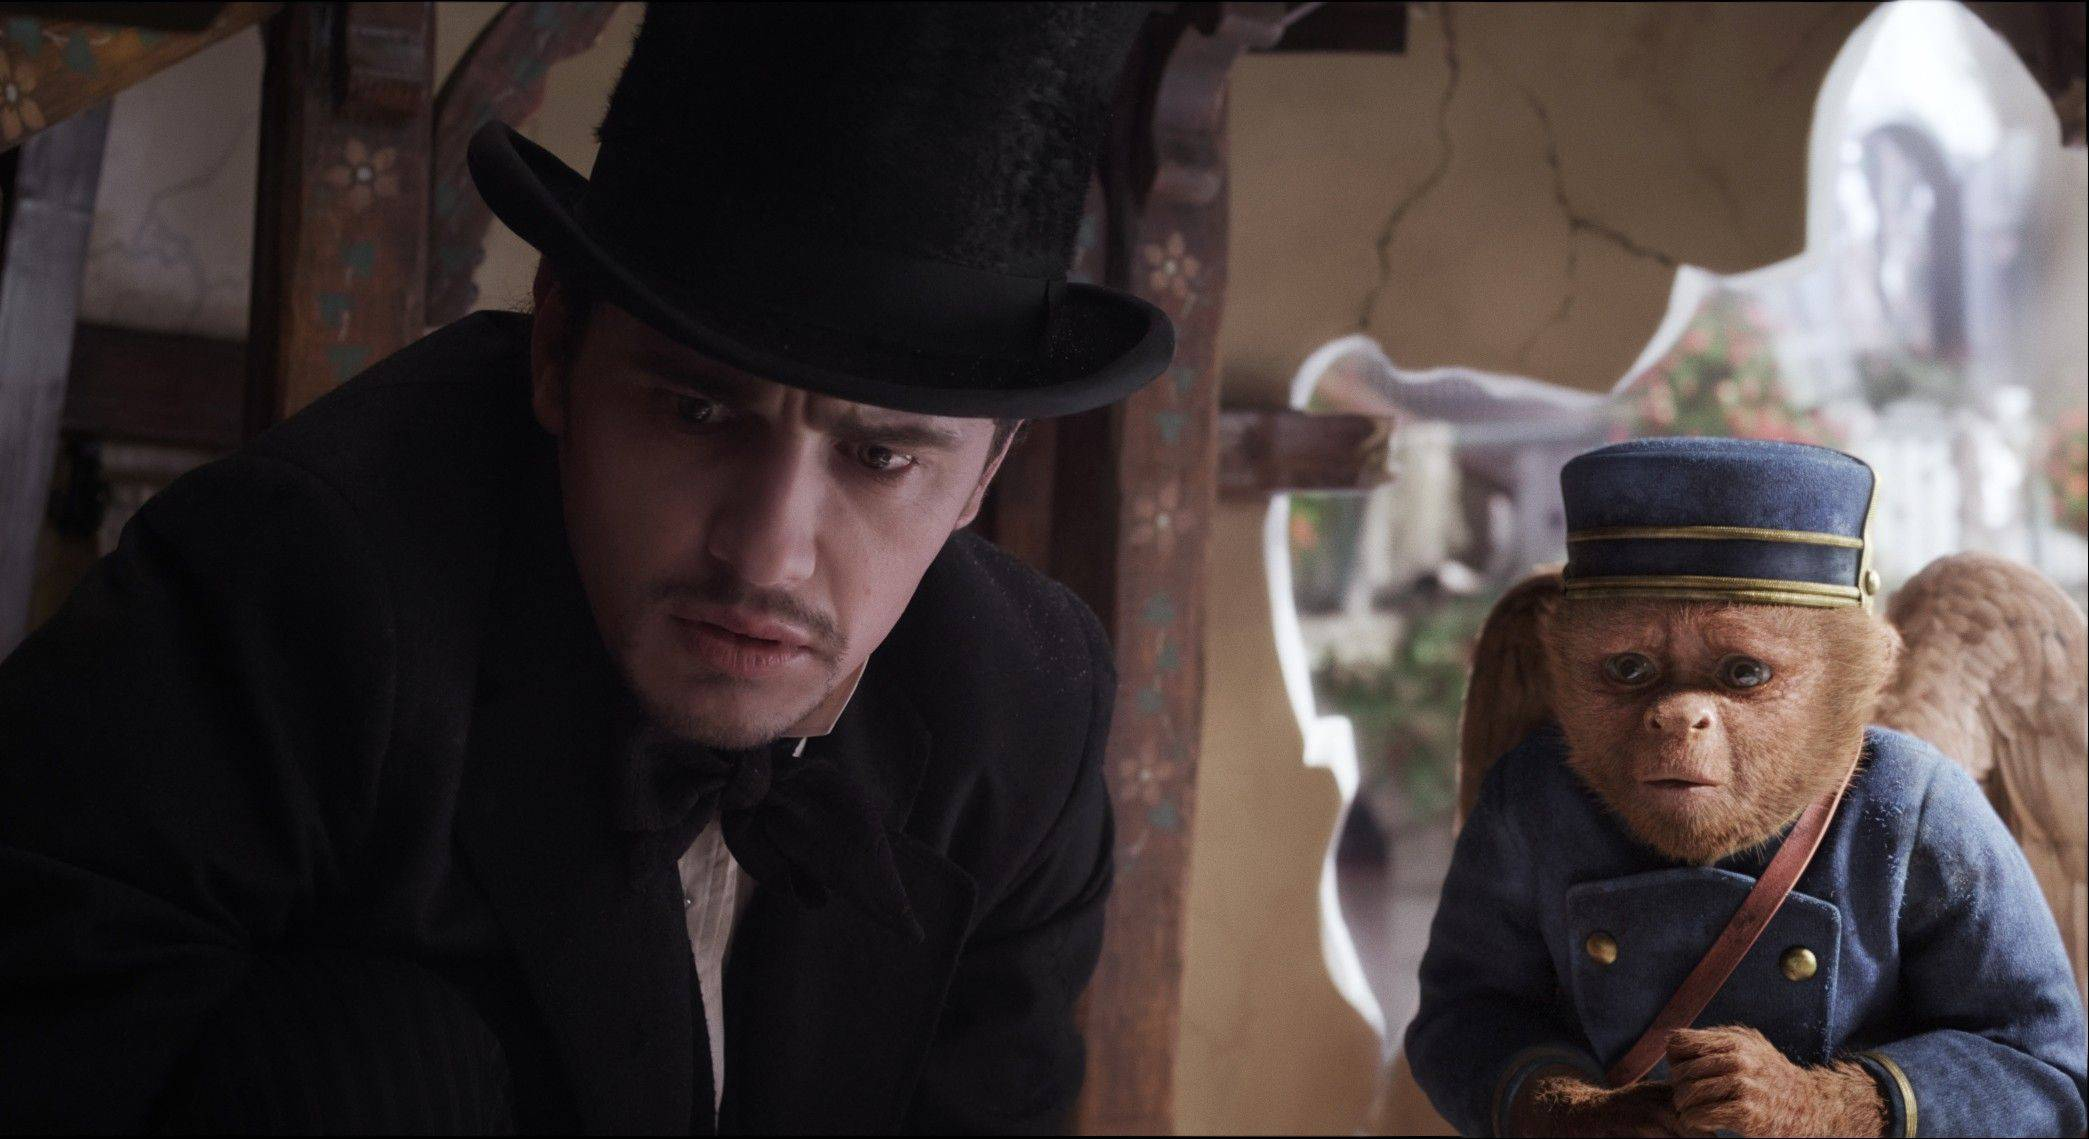 Oz the magician (James Franco) teams up with a flying monkey named Finley (Zach Braff) in Sam Raimi�s lackluster prequel �Oz the Great and Powerful.�